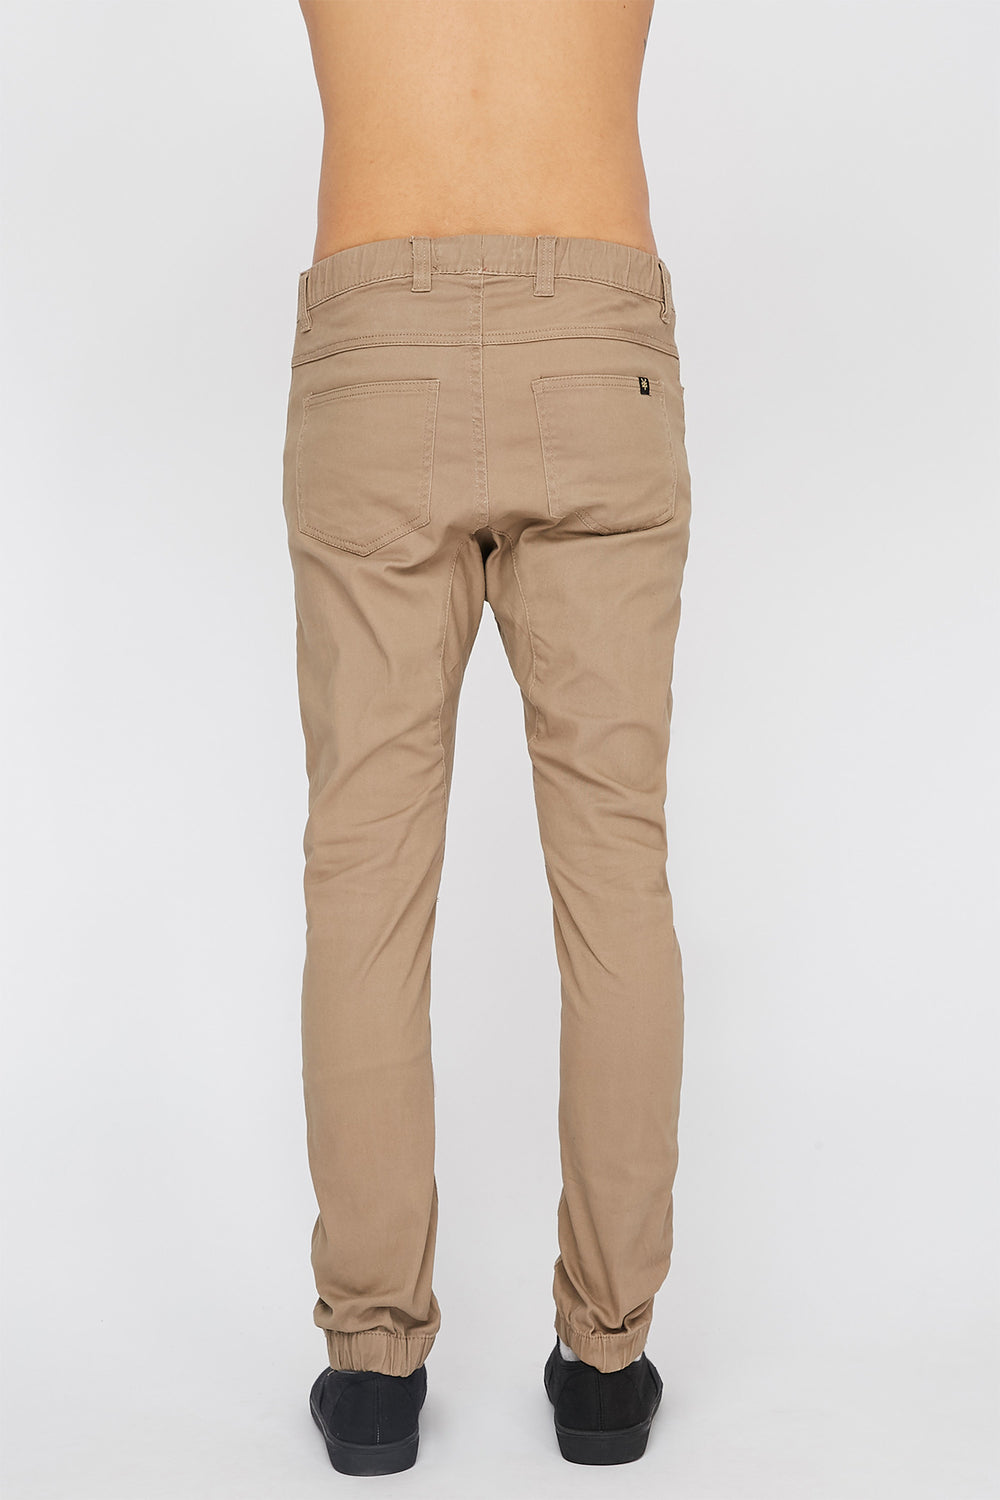 Jogger À 5 Poches Zoo York Homme Sable